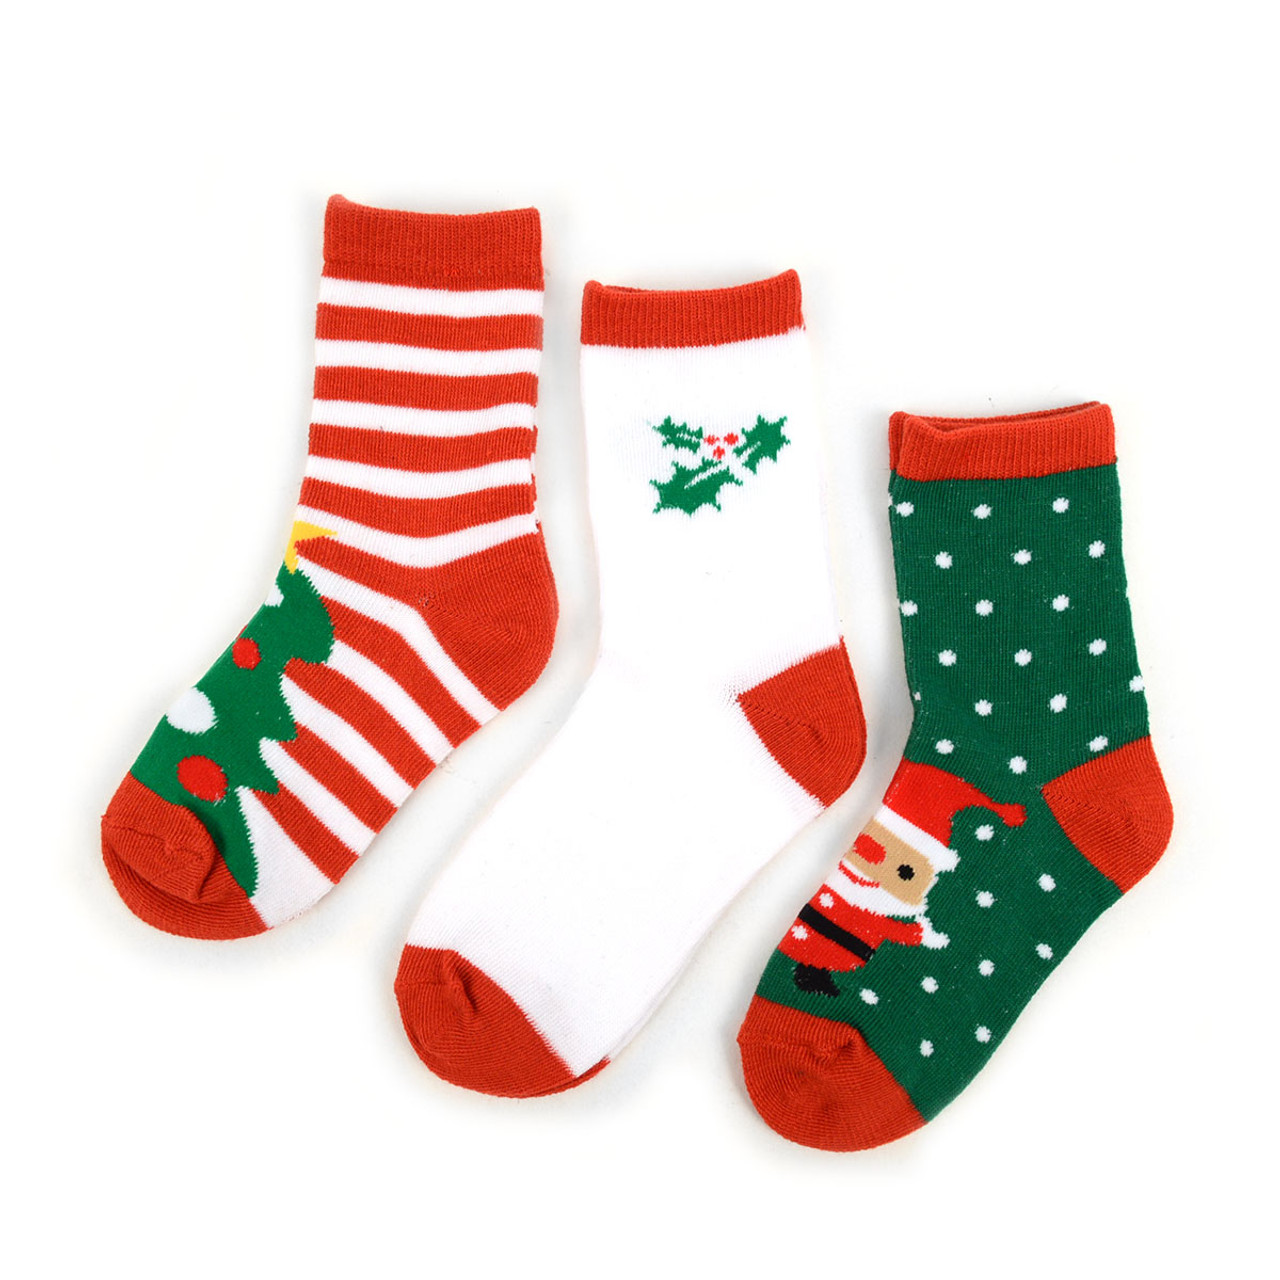 360cee5532c 3 Pairs Pack Kids Christmas Holidays Crew Socks 4-7 Yrs - 3PK-47KXMS